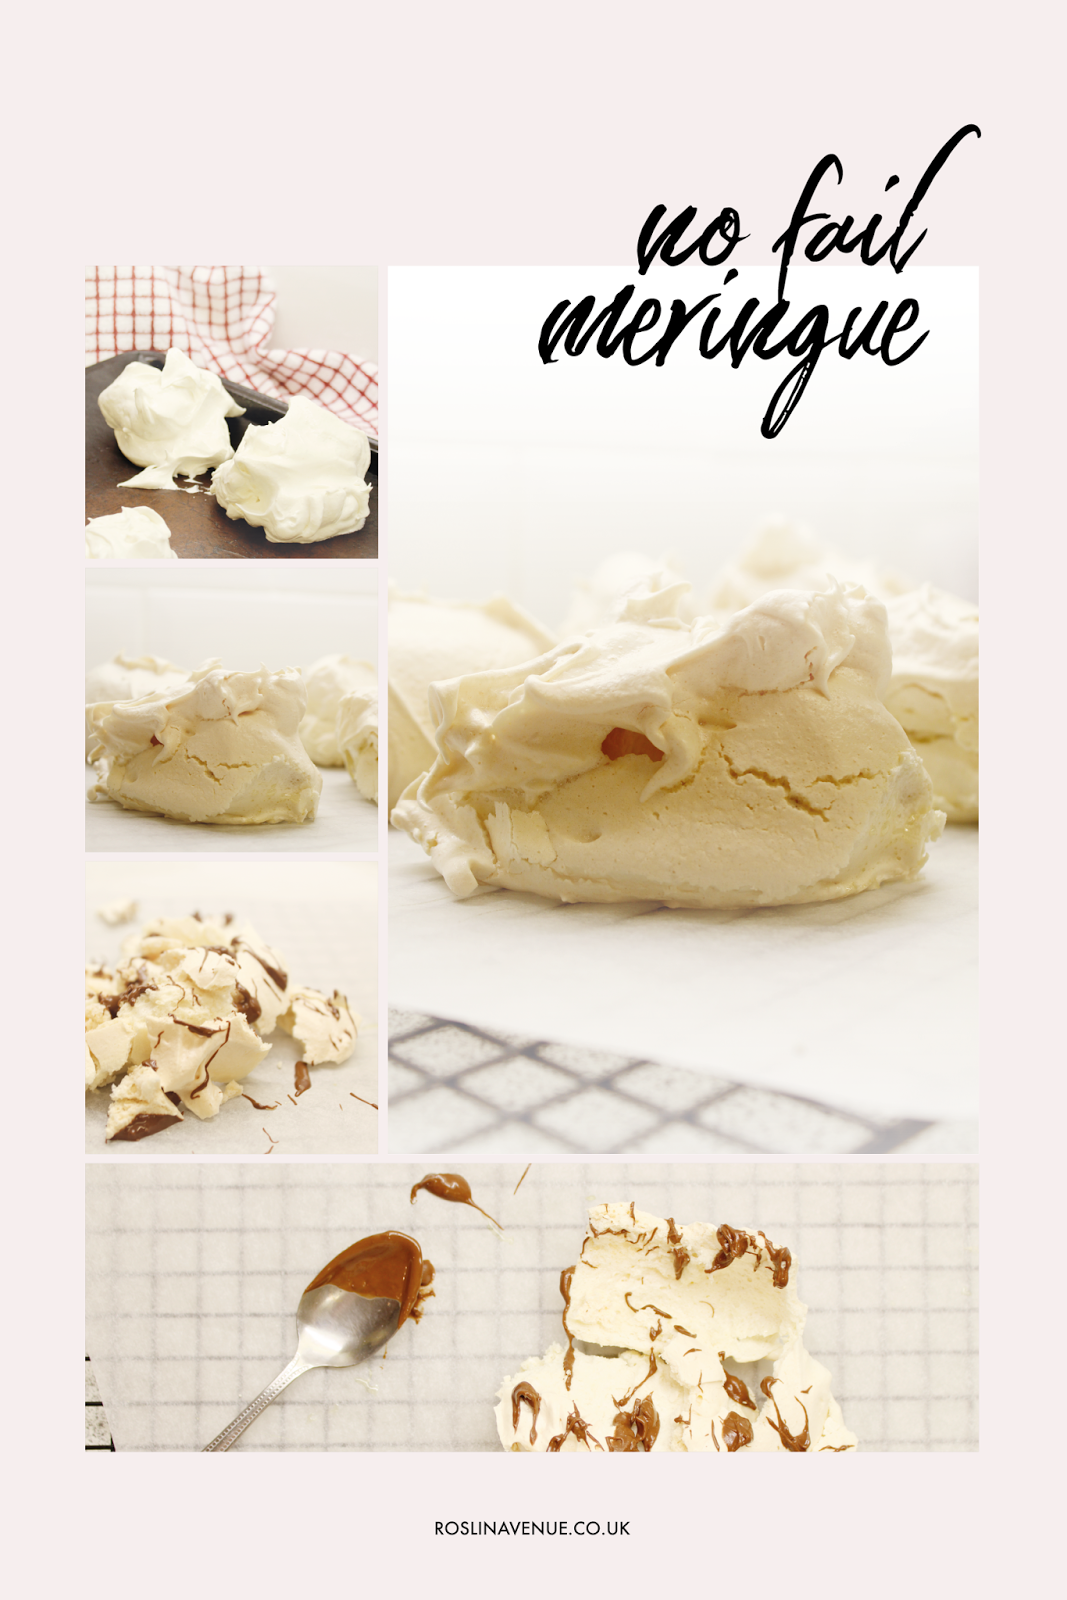 Recipe card for simple, easy, no-fail meringue – Mary Berry